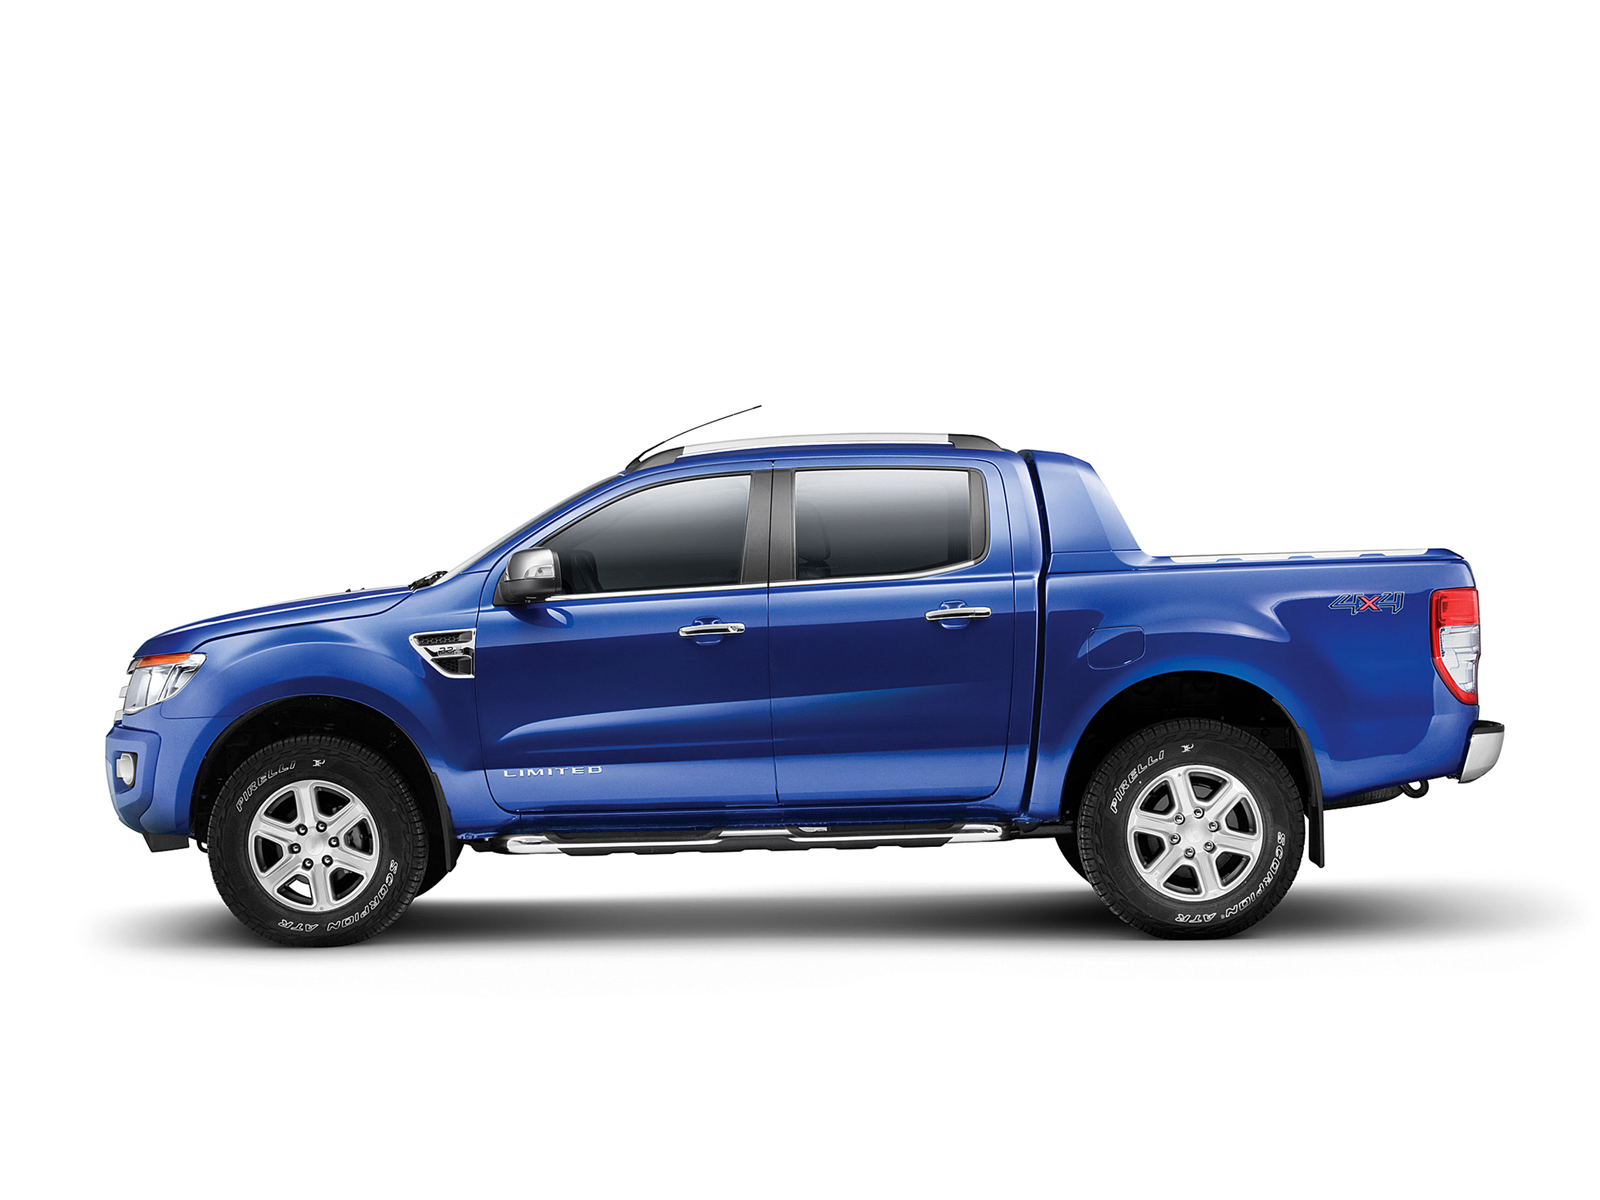 Download Ford Ranger photo #95878) You can use this pic as wallpaper